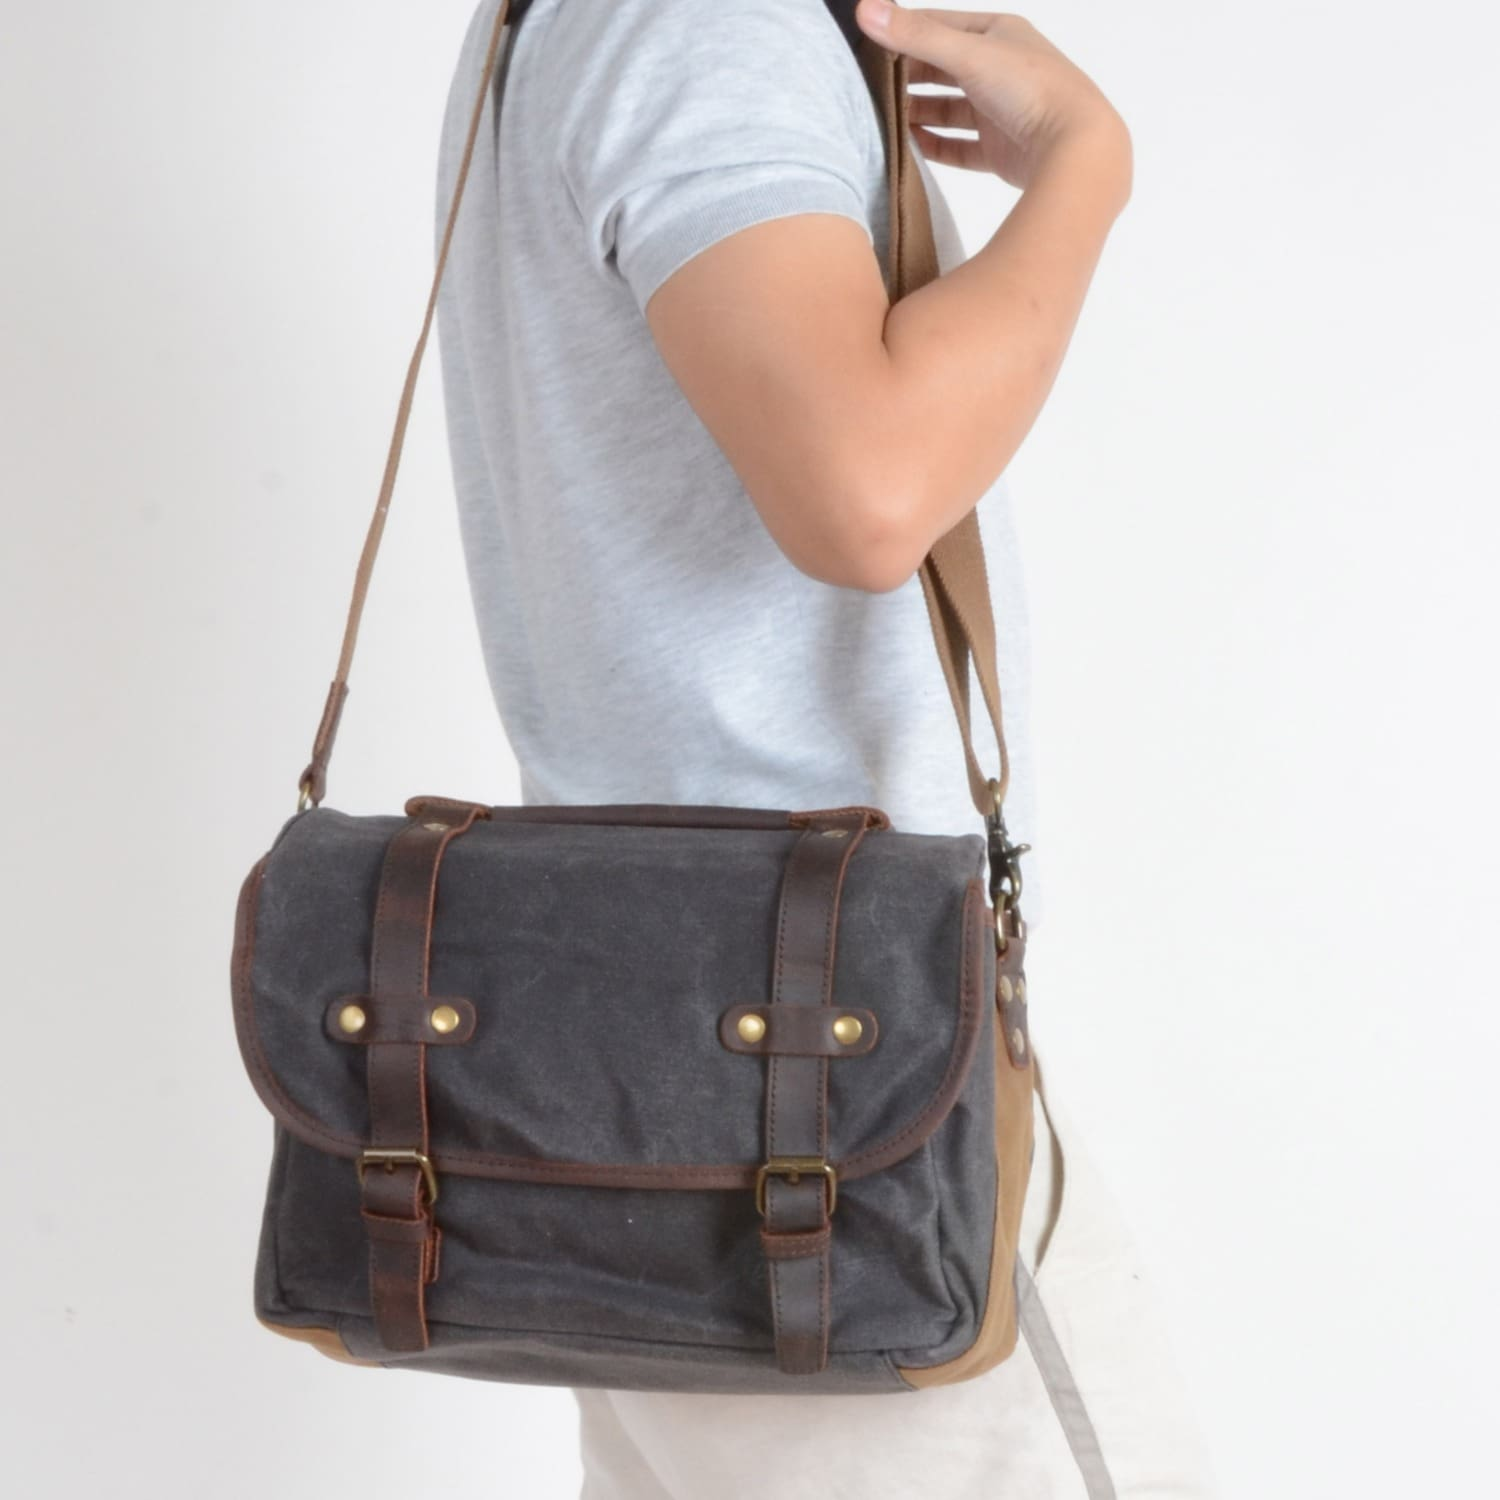 8f3aa282f0 Waxed Canvas Bag With Dslr Camera Sleeve In Grey image